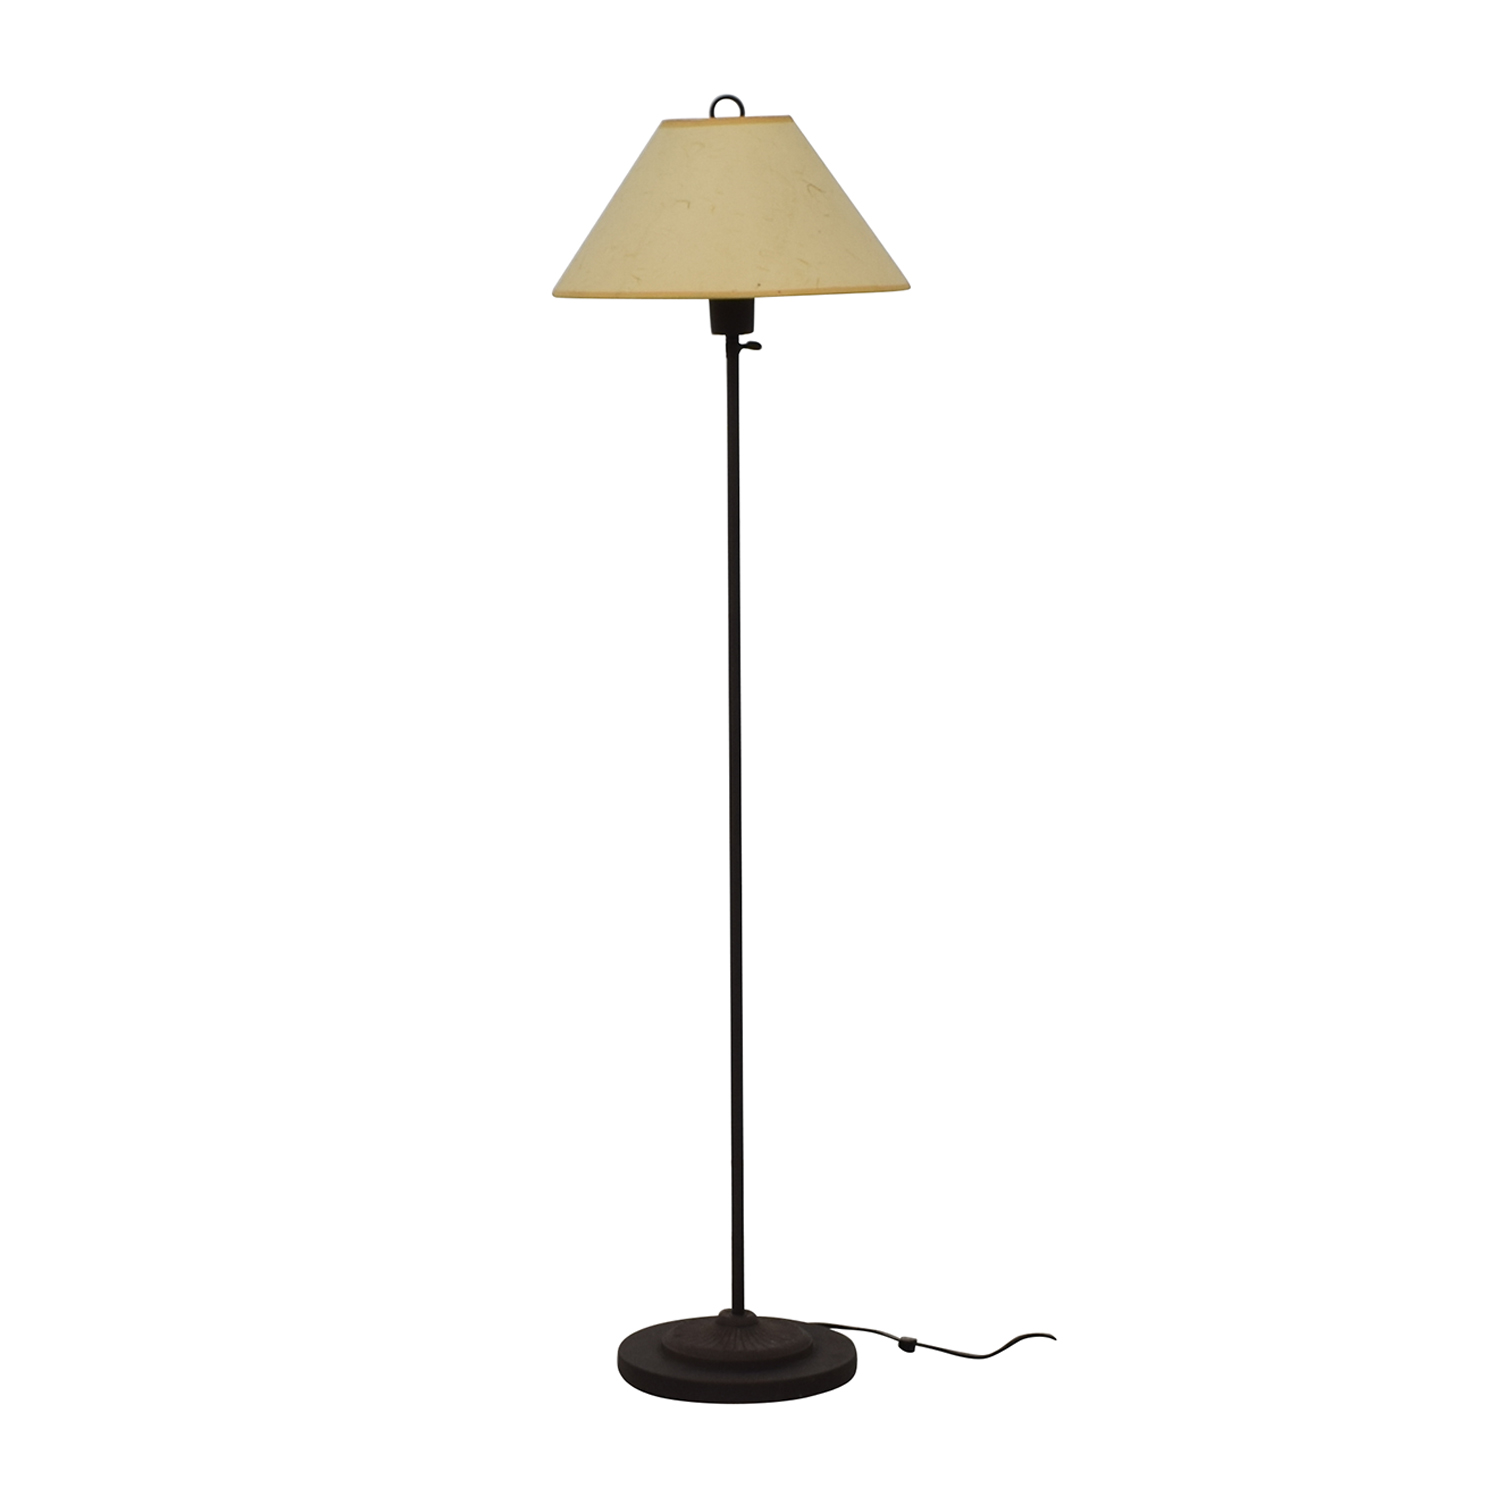 Pottery Barn Pottery Barn Floor Lamp on sale